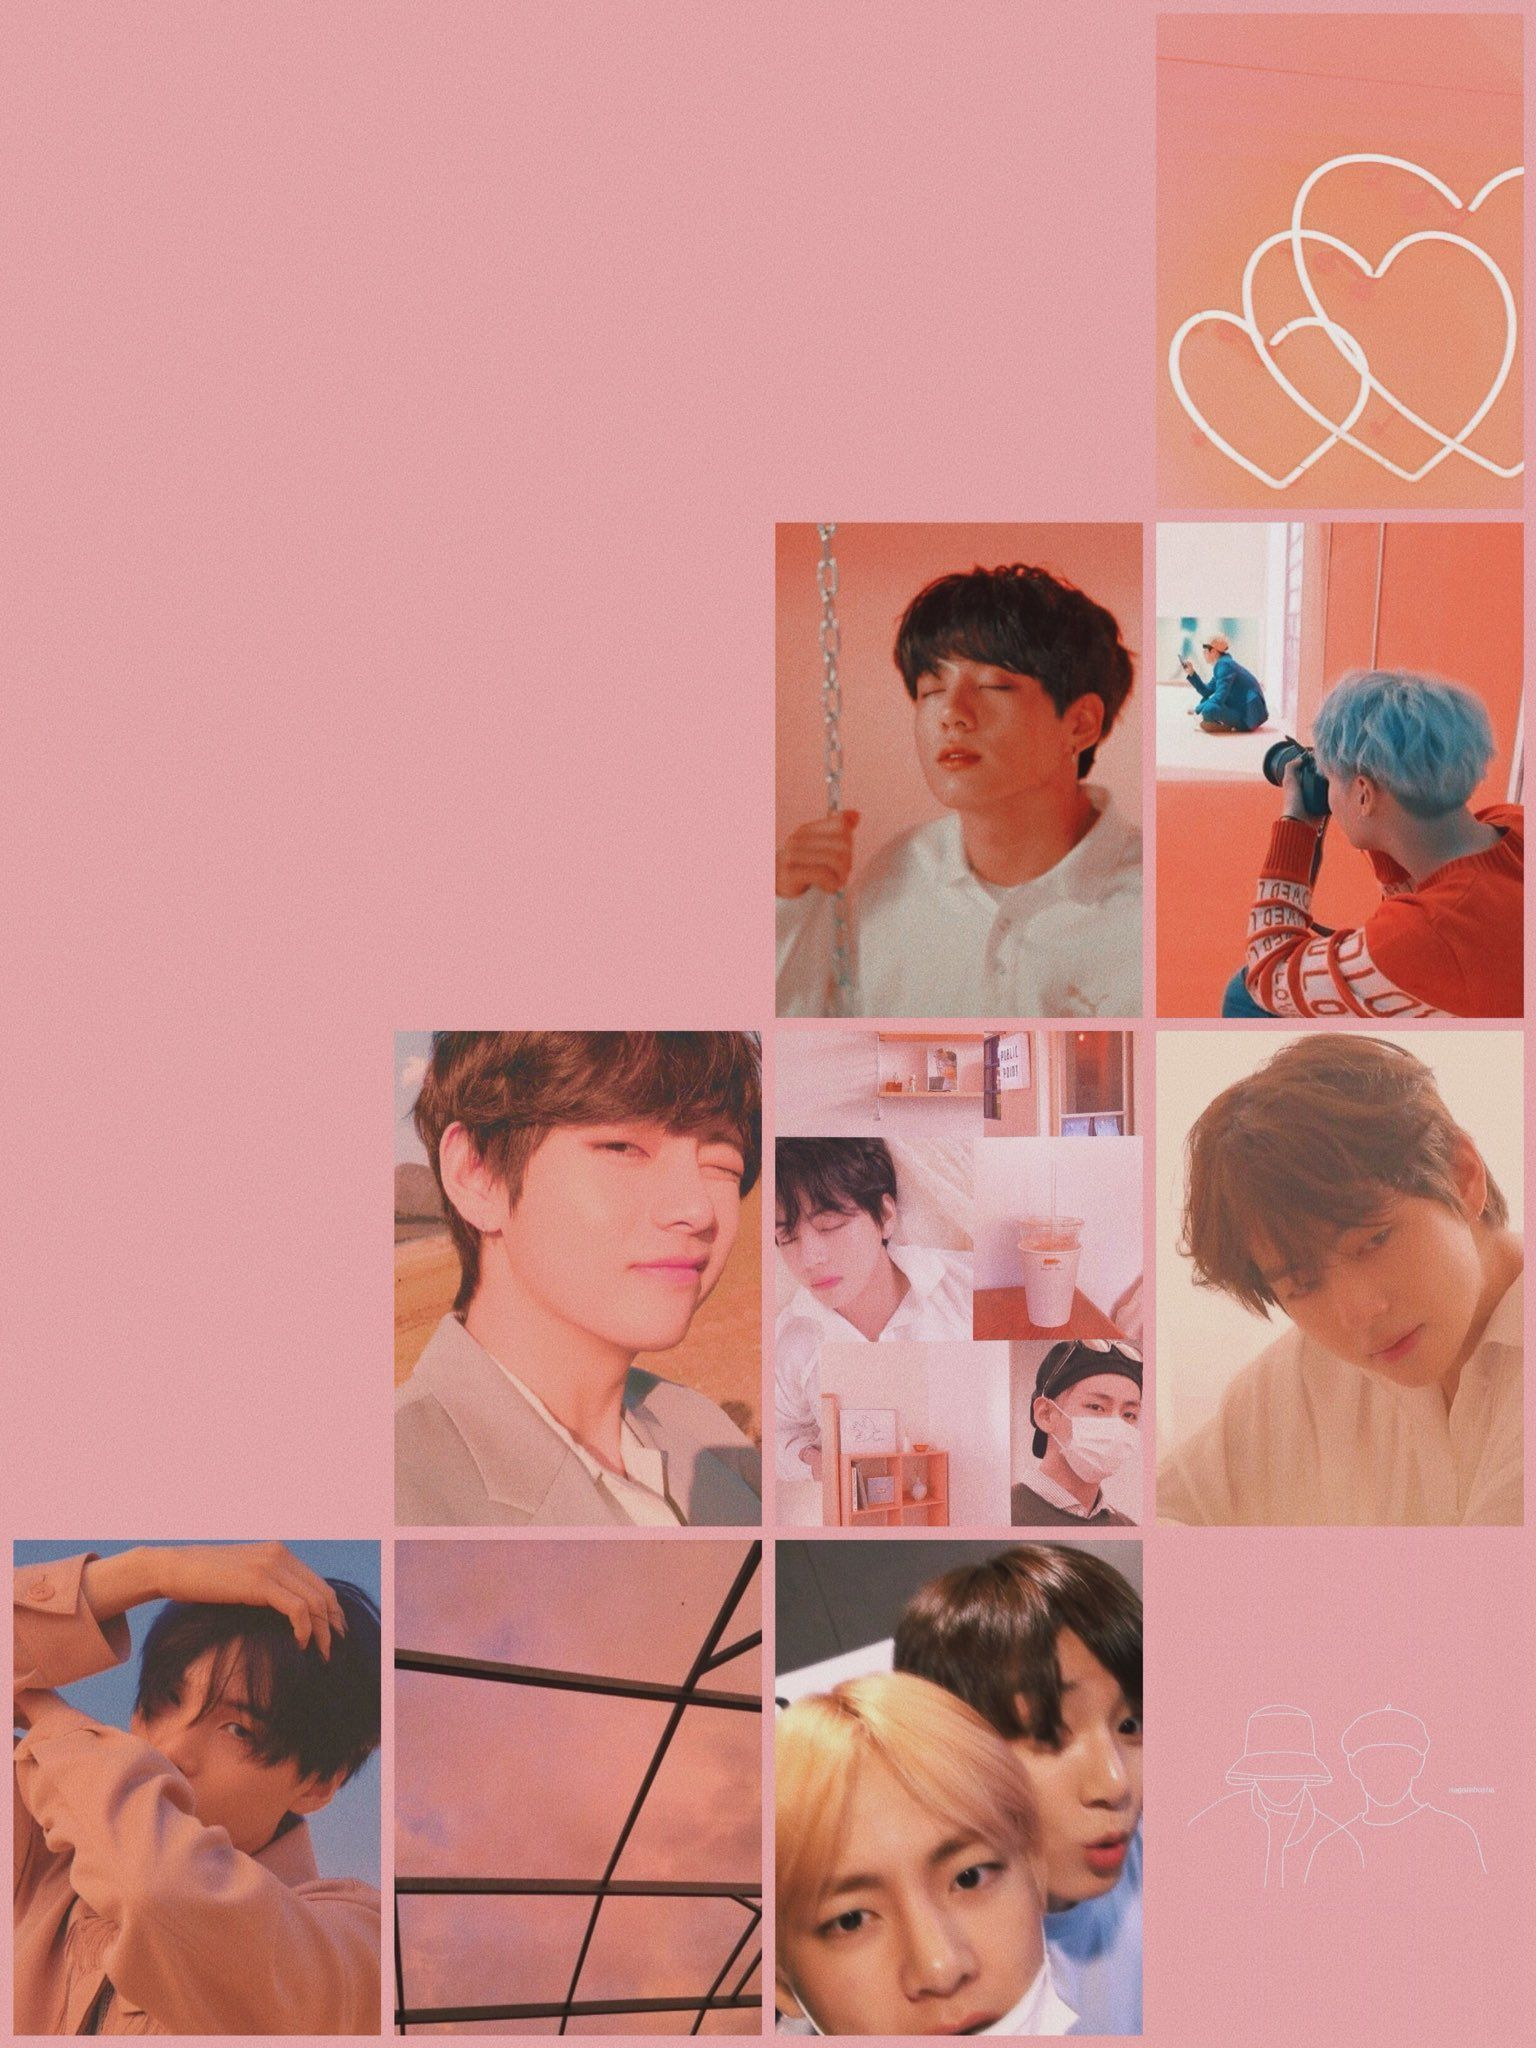 Bts Wallpapers On Bts Aesthetic Wallpaper For Phone Peach Wallpaper Bts Wallpaper Bts wallpaper 2021 ipad